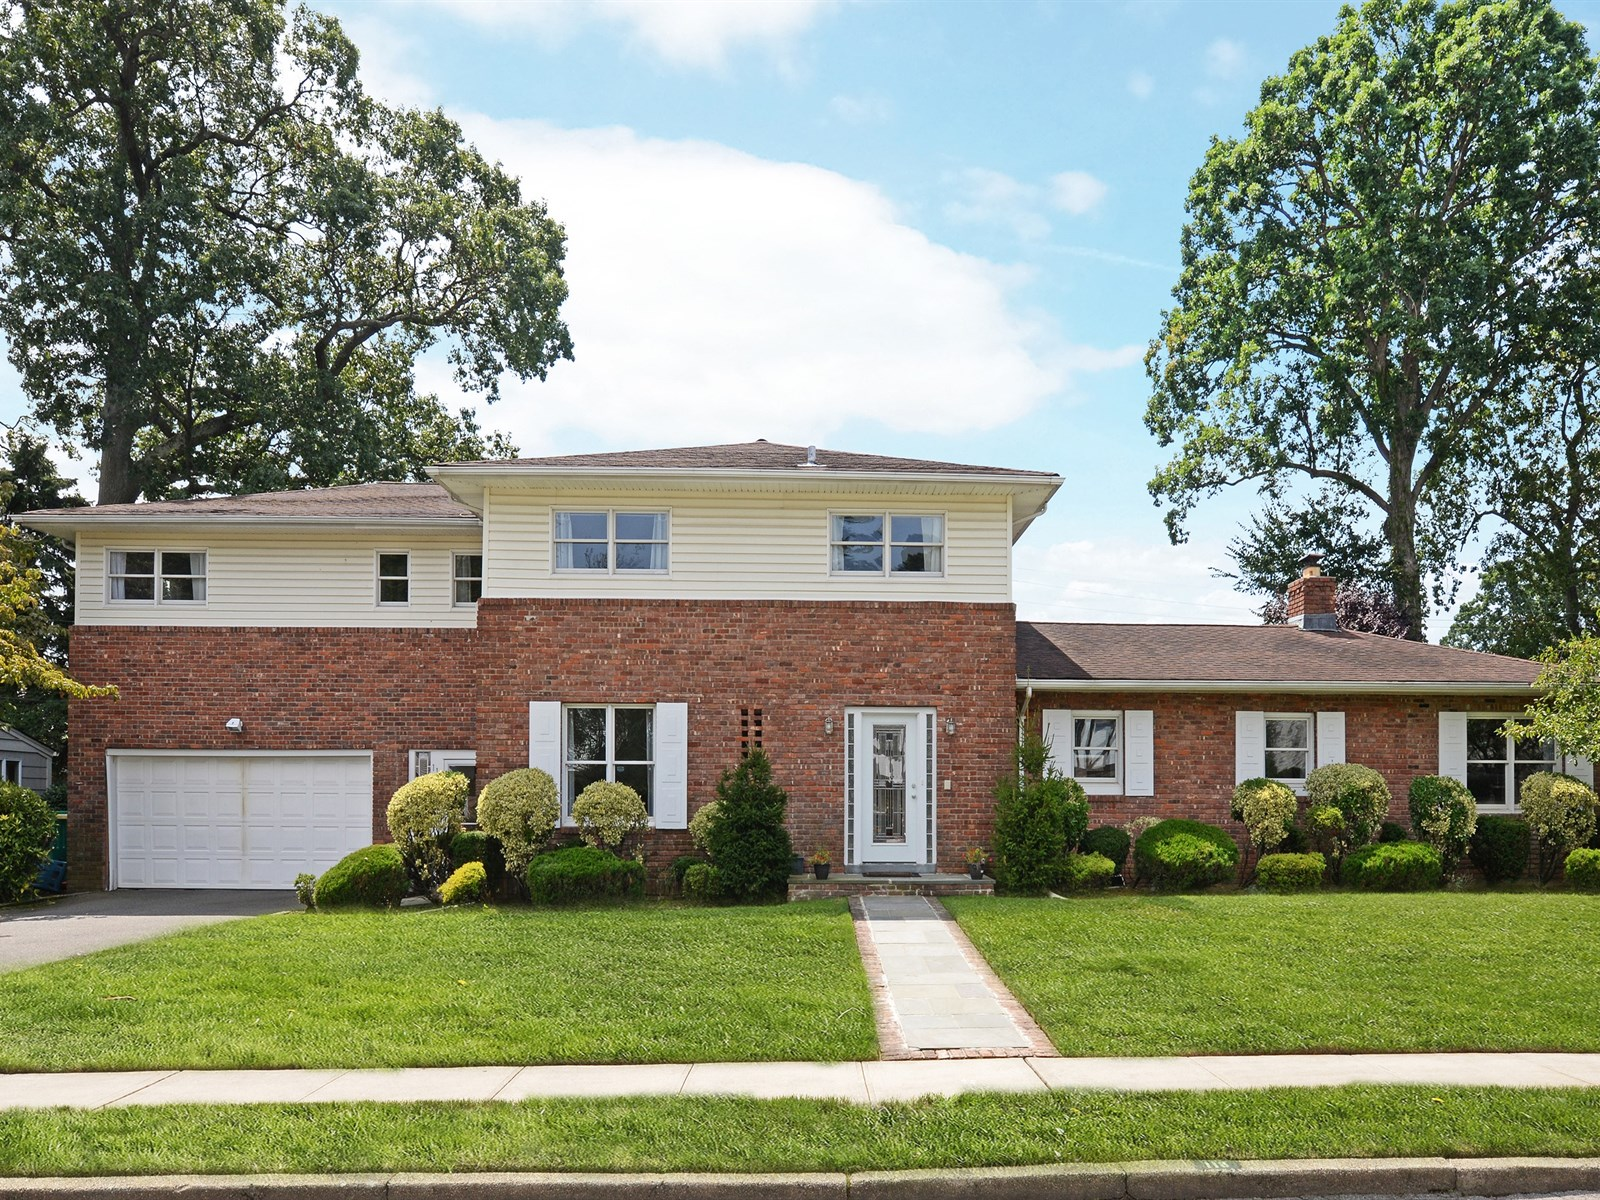 Single Family Home for Sale at Colonial 118 Andover Rd Rockville Centre, New York 11570 United States